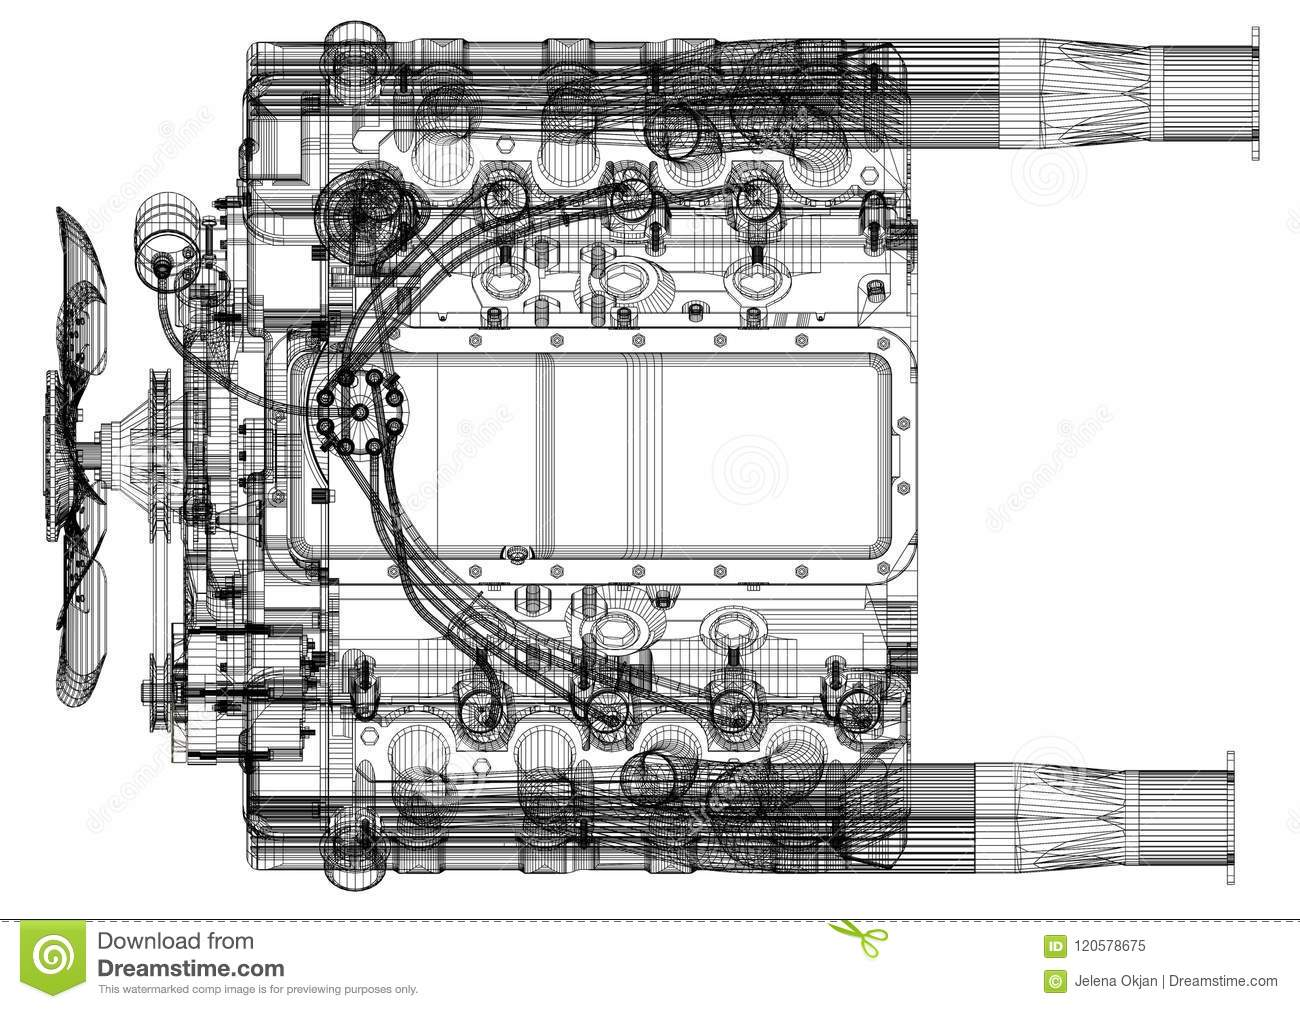 Architecte Blueprint de conception de moteur de voiture - d isolement